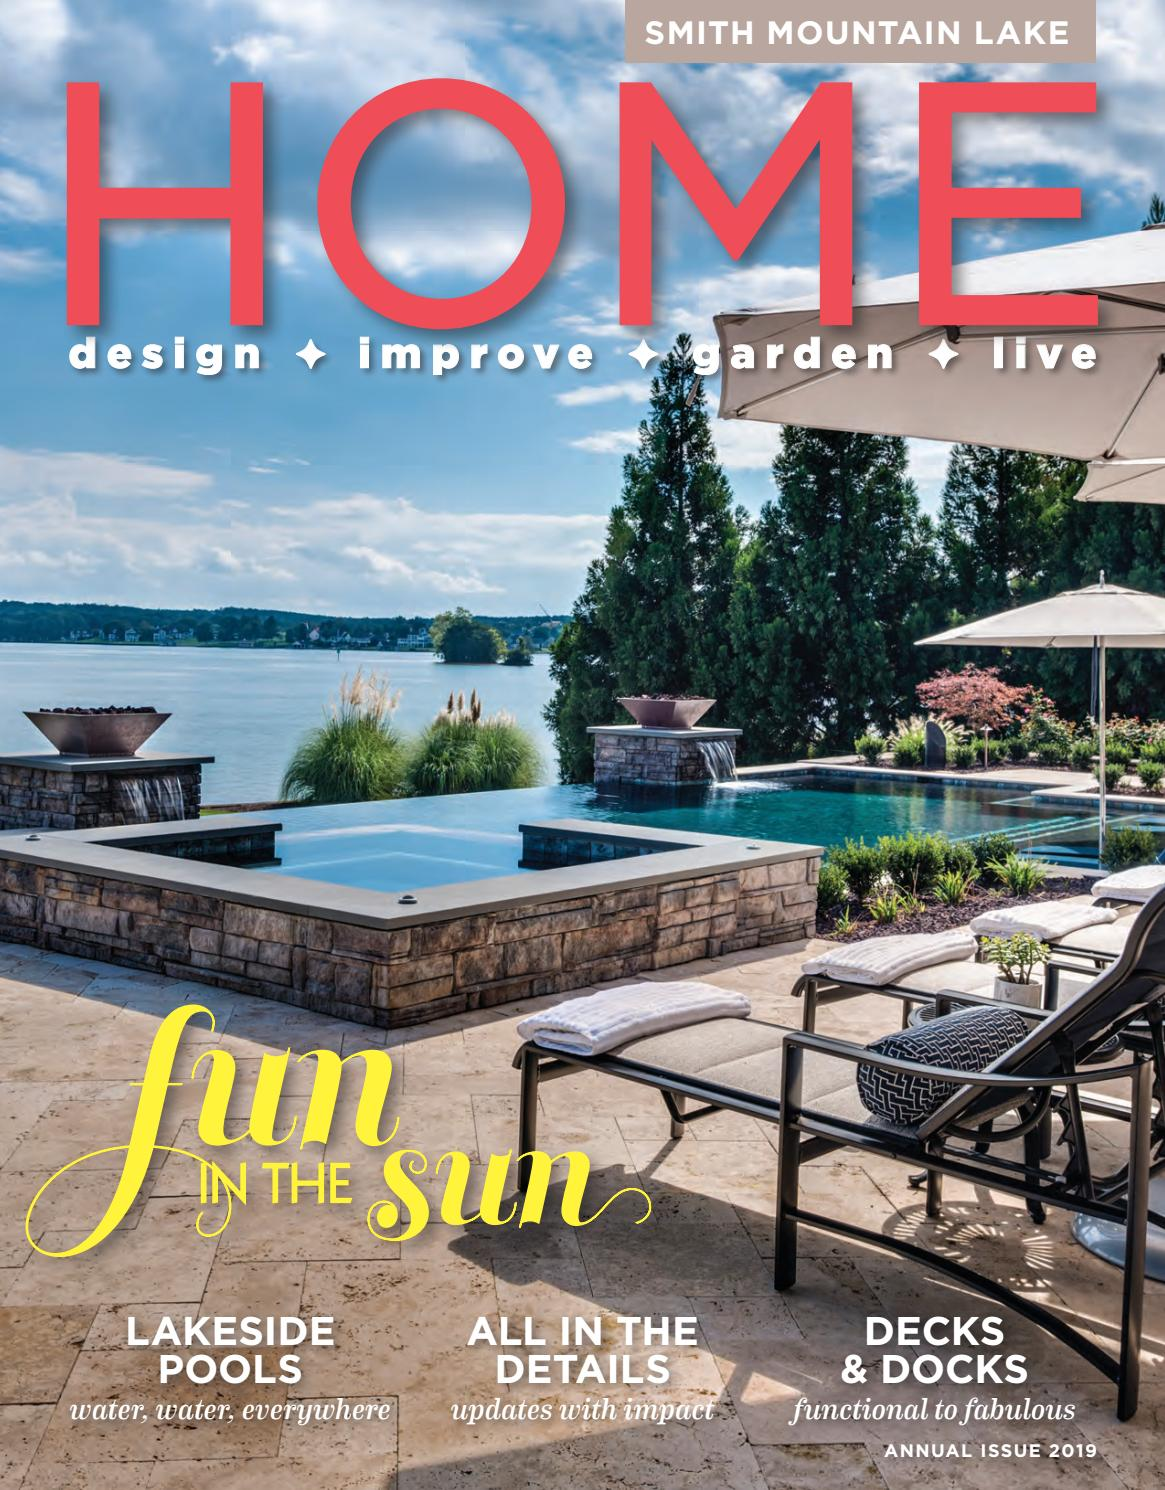 D Antoni Rattan A Castelvetrano.Smith Mountain Lake Home Magazine 2019 By West Willow Publishing